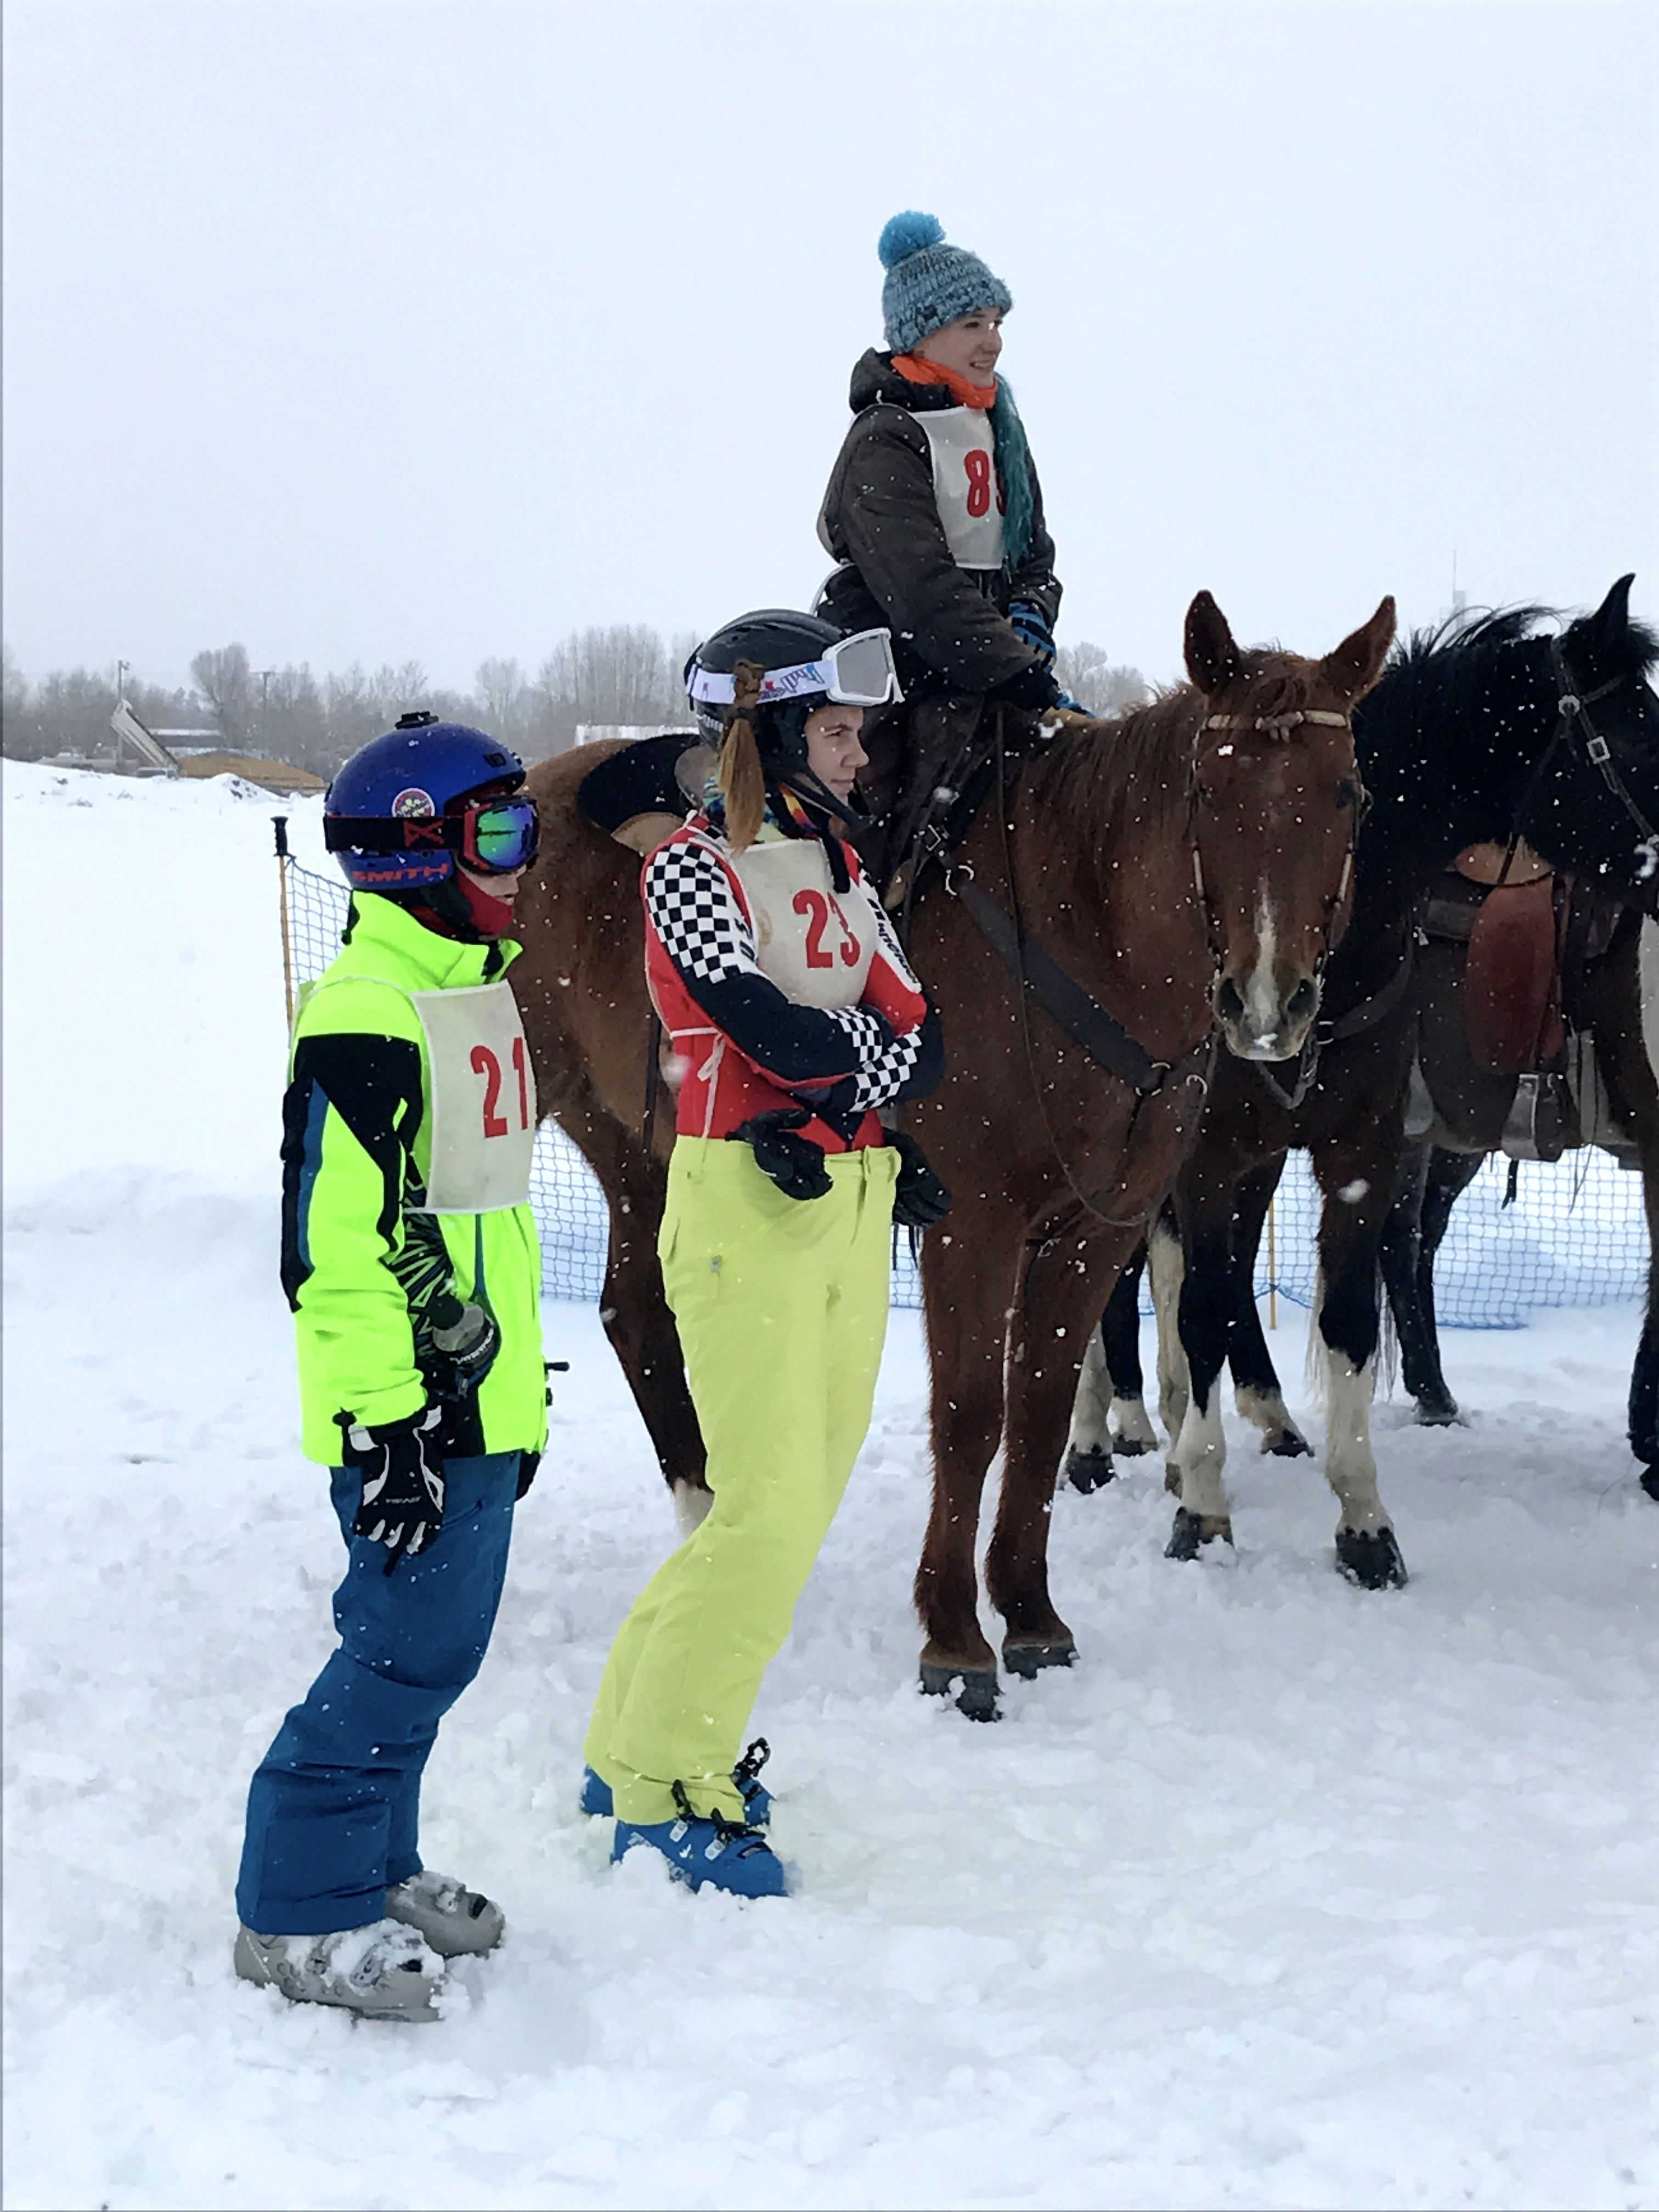 Competitors at Pinedale Winter Carnival @2017 Skijor International, LLC